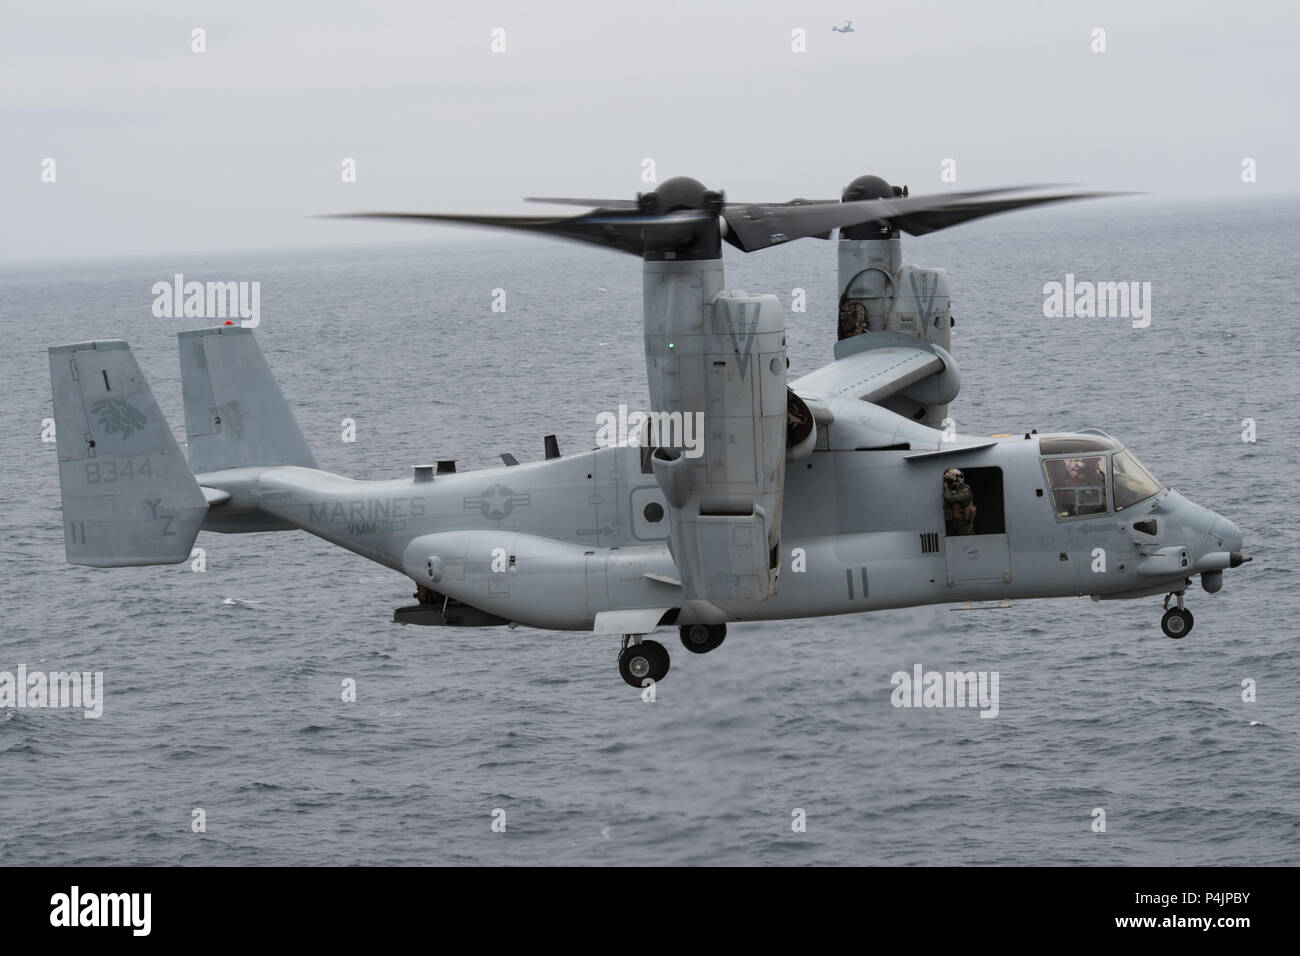 180620-N-UD522-0128 PACIFIC OCEAN (June 20, 2018) An MV-22B Osprey assigned to the Marine Medium Tiltrotor Squadron (VMM) 363,  Third Marine Aircraft Wing (3rd MAW), prepares to land on the flight deck of the Nimitz-class aircraft carrier USS John C. Stennis (CVN 74). John C. Stennis is underway preparing for its next scheduled deployment. (U.S. Navy photo by Mass Communication Specialist 2nd Class David A. Brandenburg/Released) Stock Photo